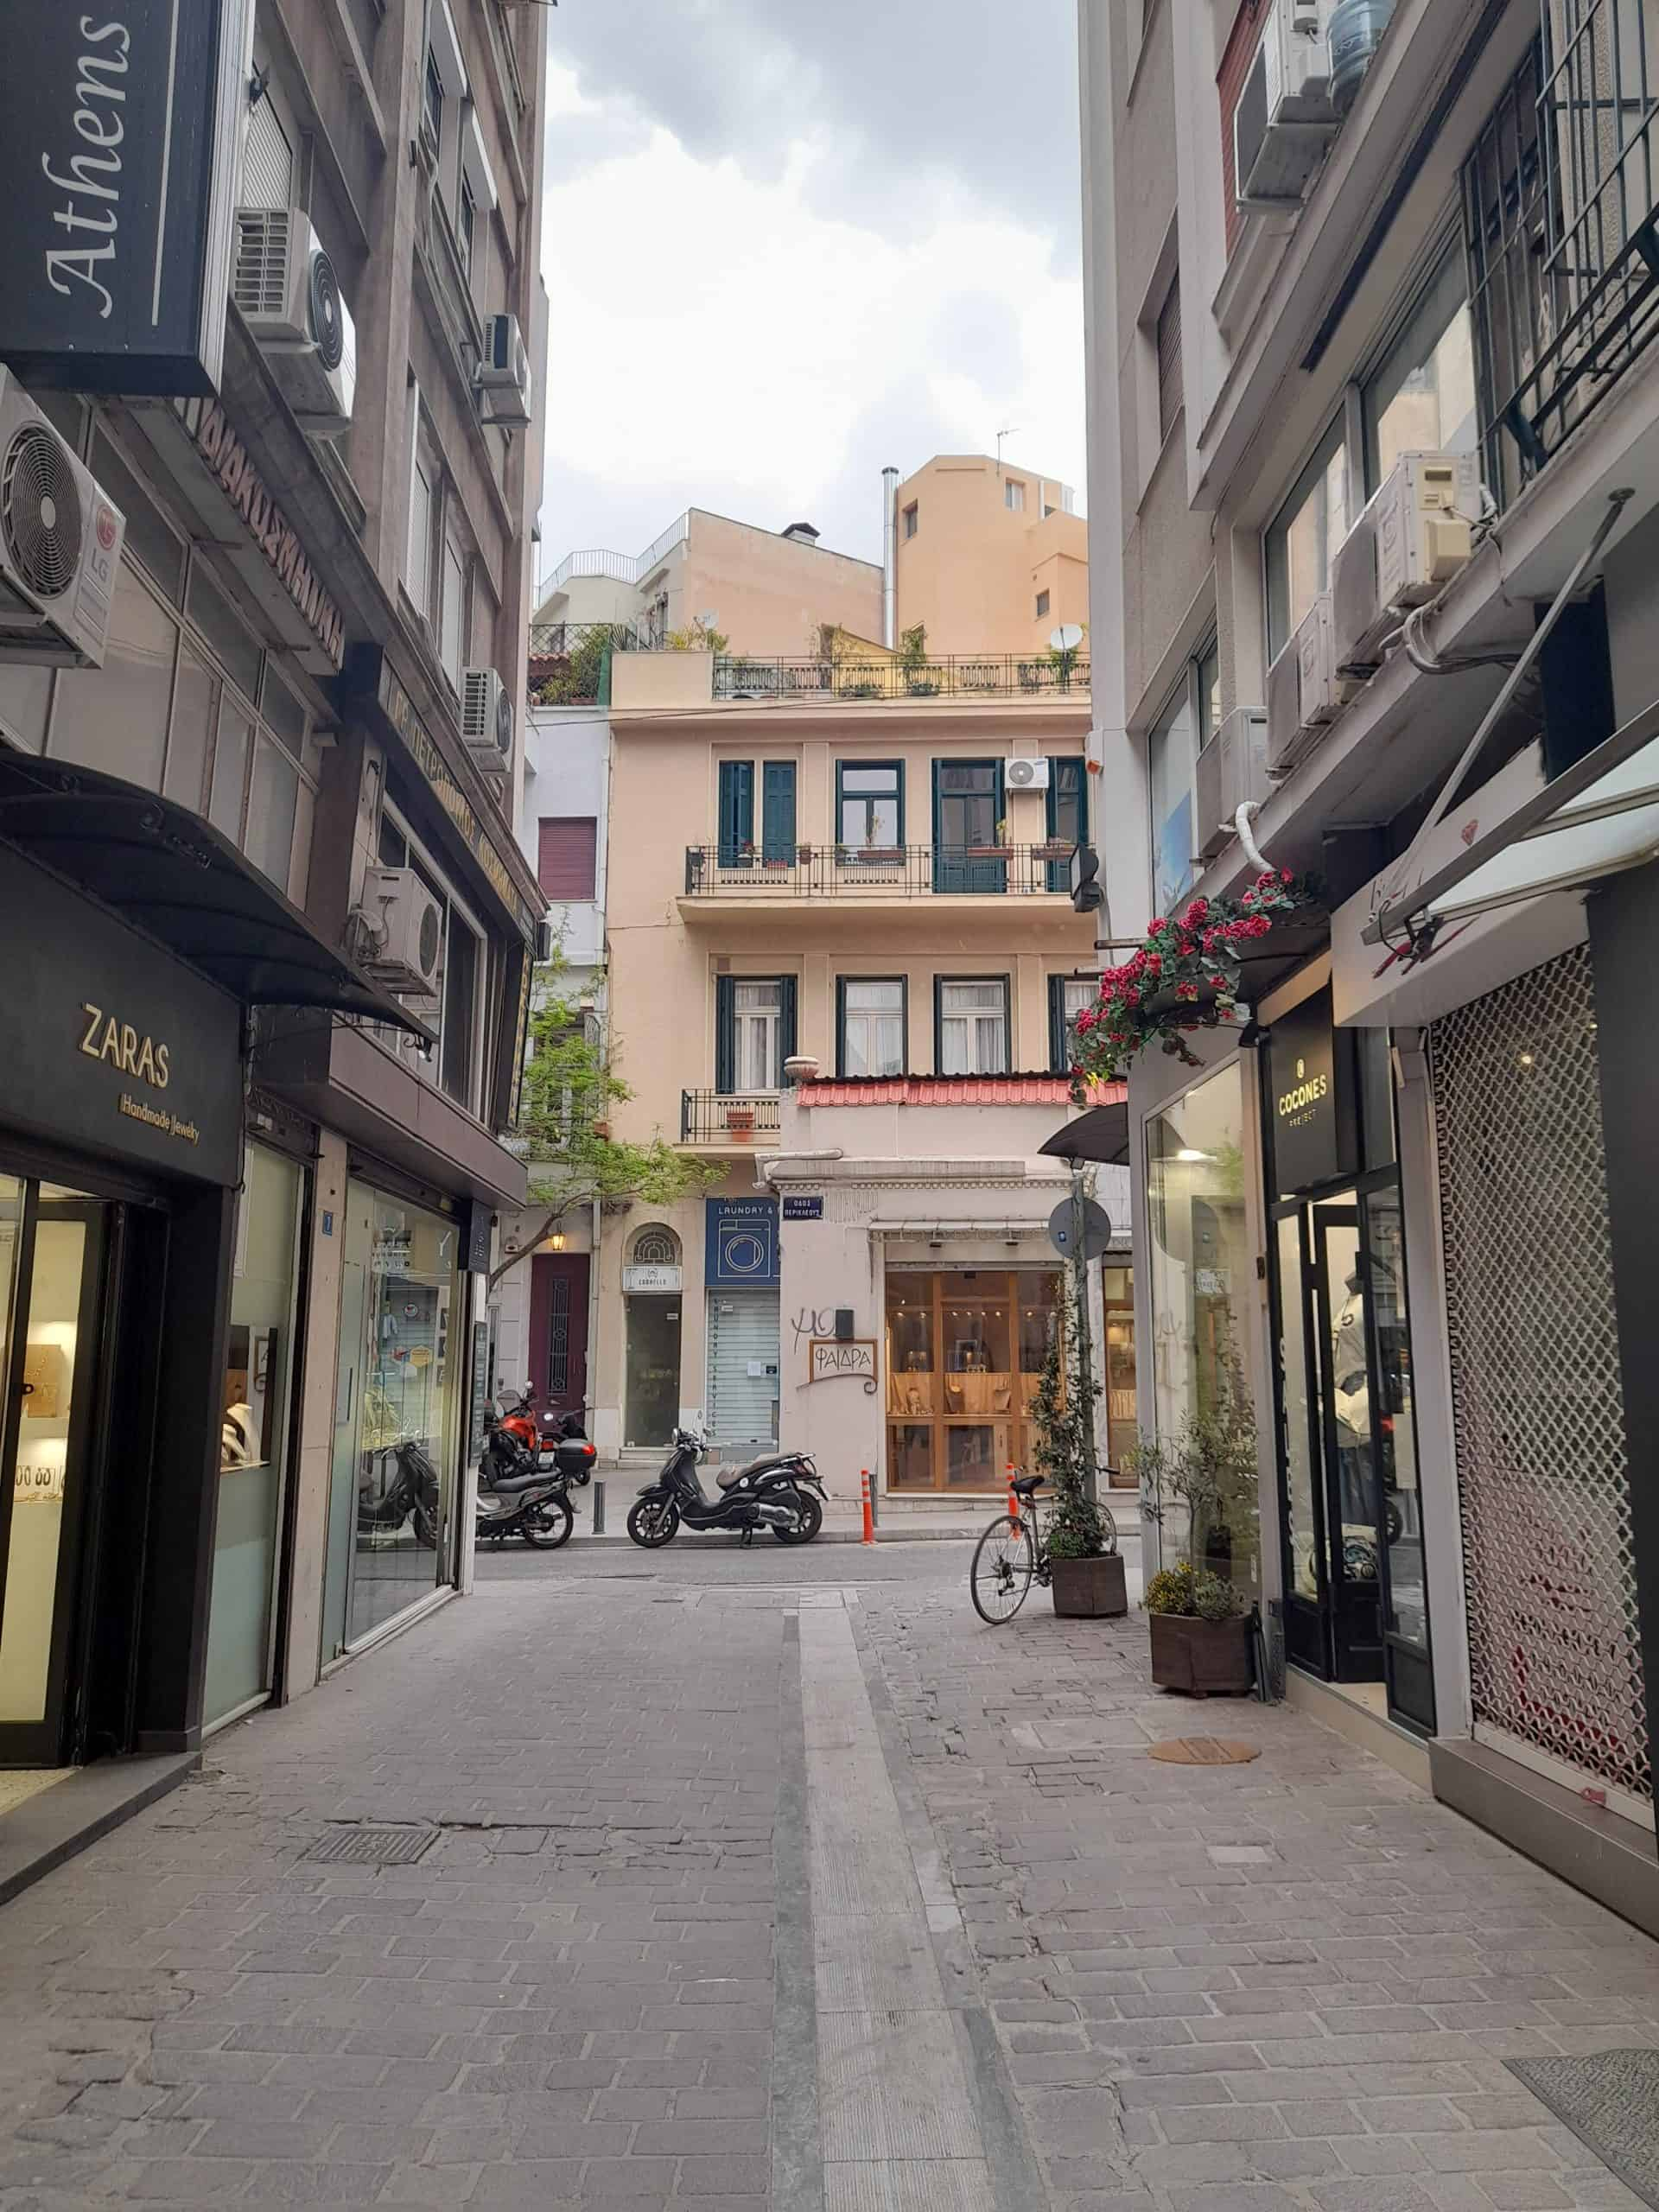 Athenian stores often have sales commencing in September